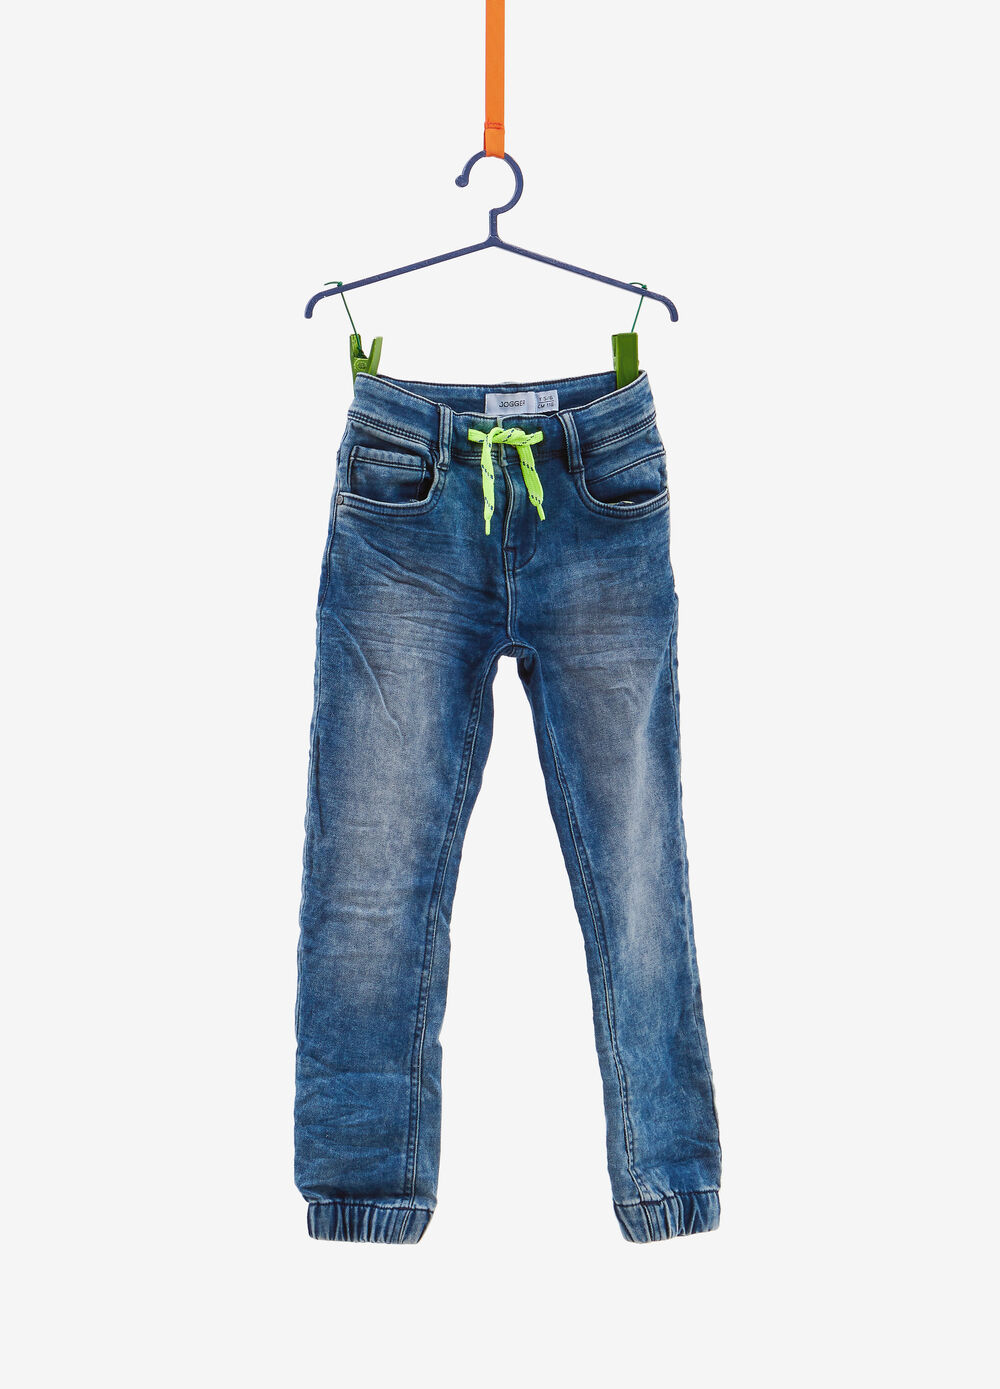 Jogger-fit faded-effect stretch jeans with drawstring